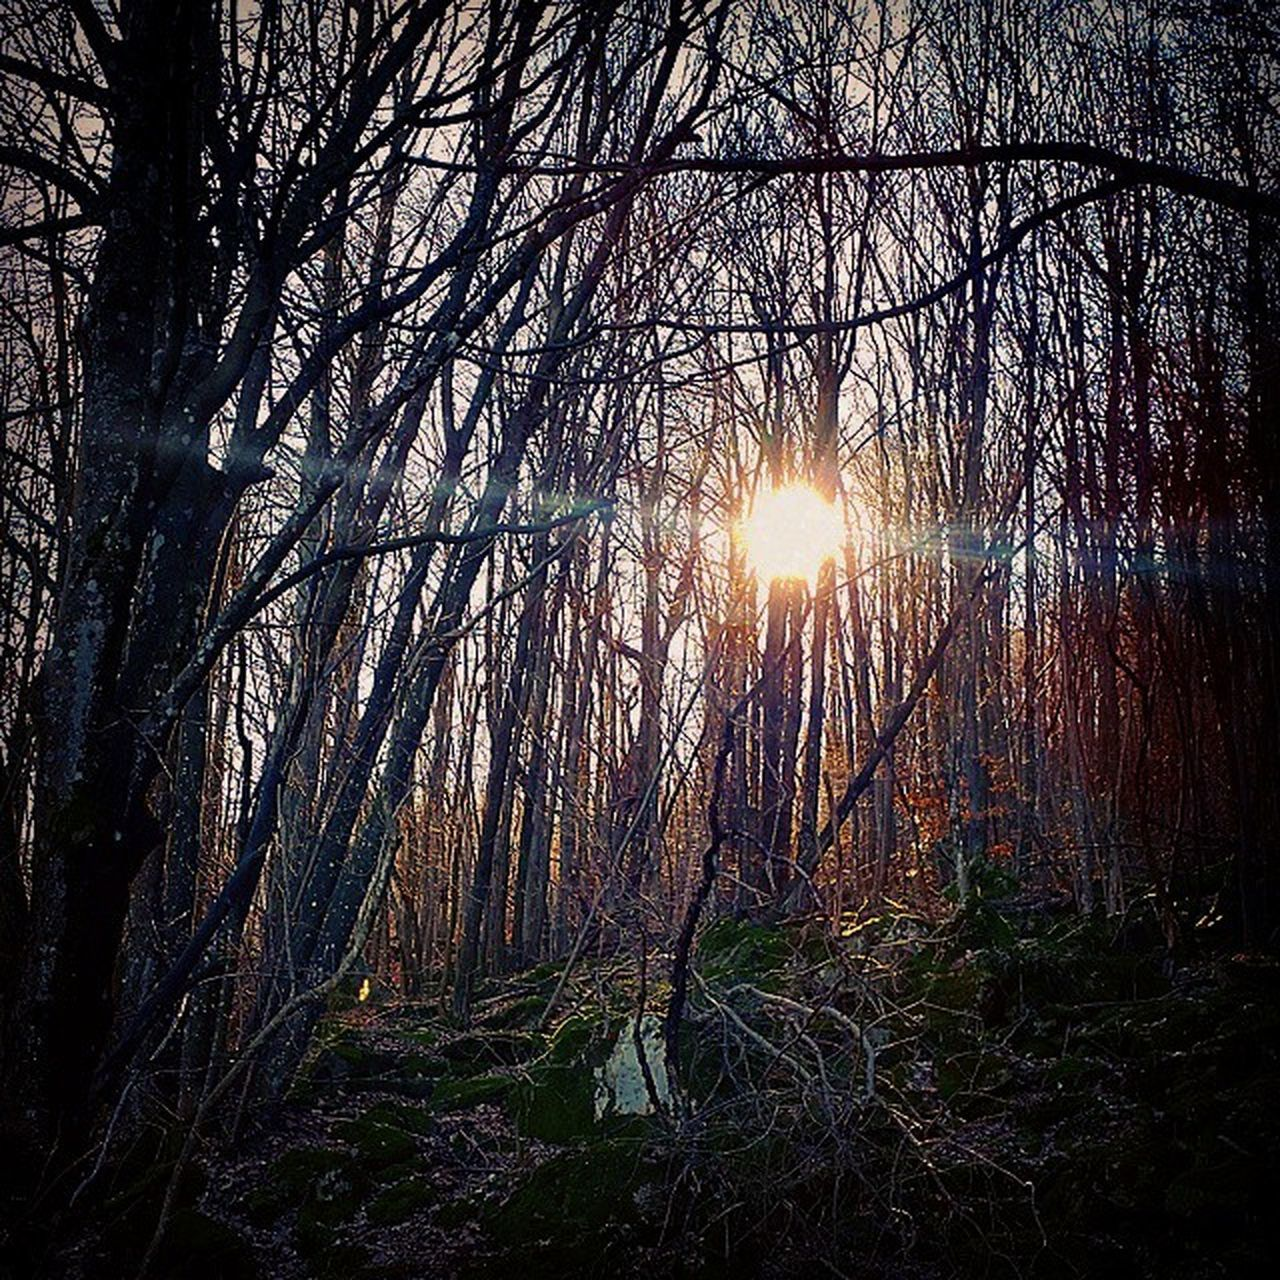 tree, forest, nature, lens flare, tranquility, beauty in nature, scenics, sun, tranquil scene, sunlight, sunbeam, tree trunk, no people, bare tree, outdoors, branch, sunset, growth, tree area, sky, day